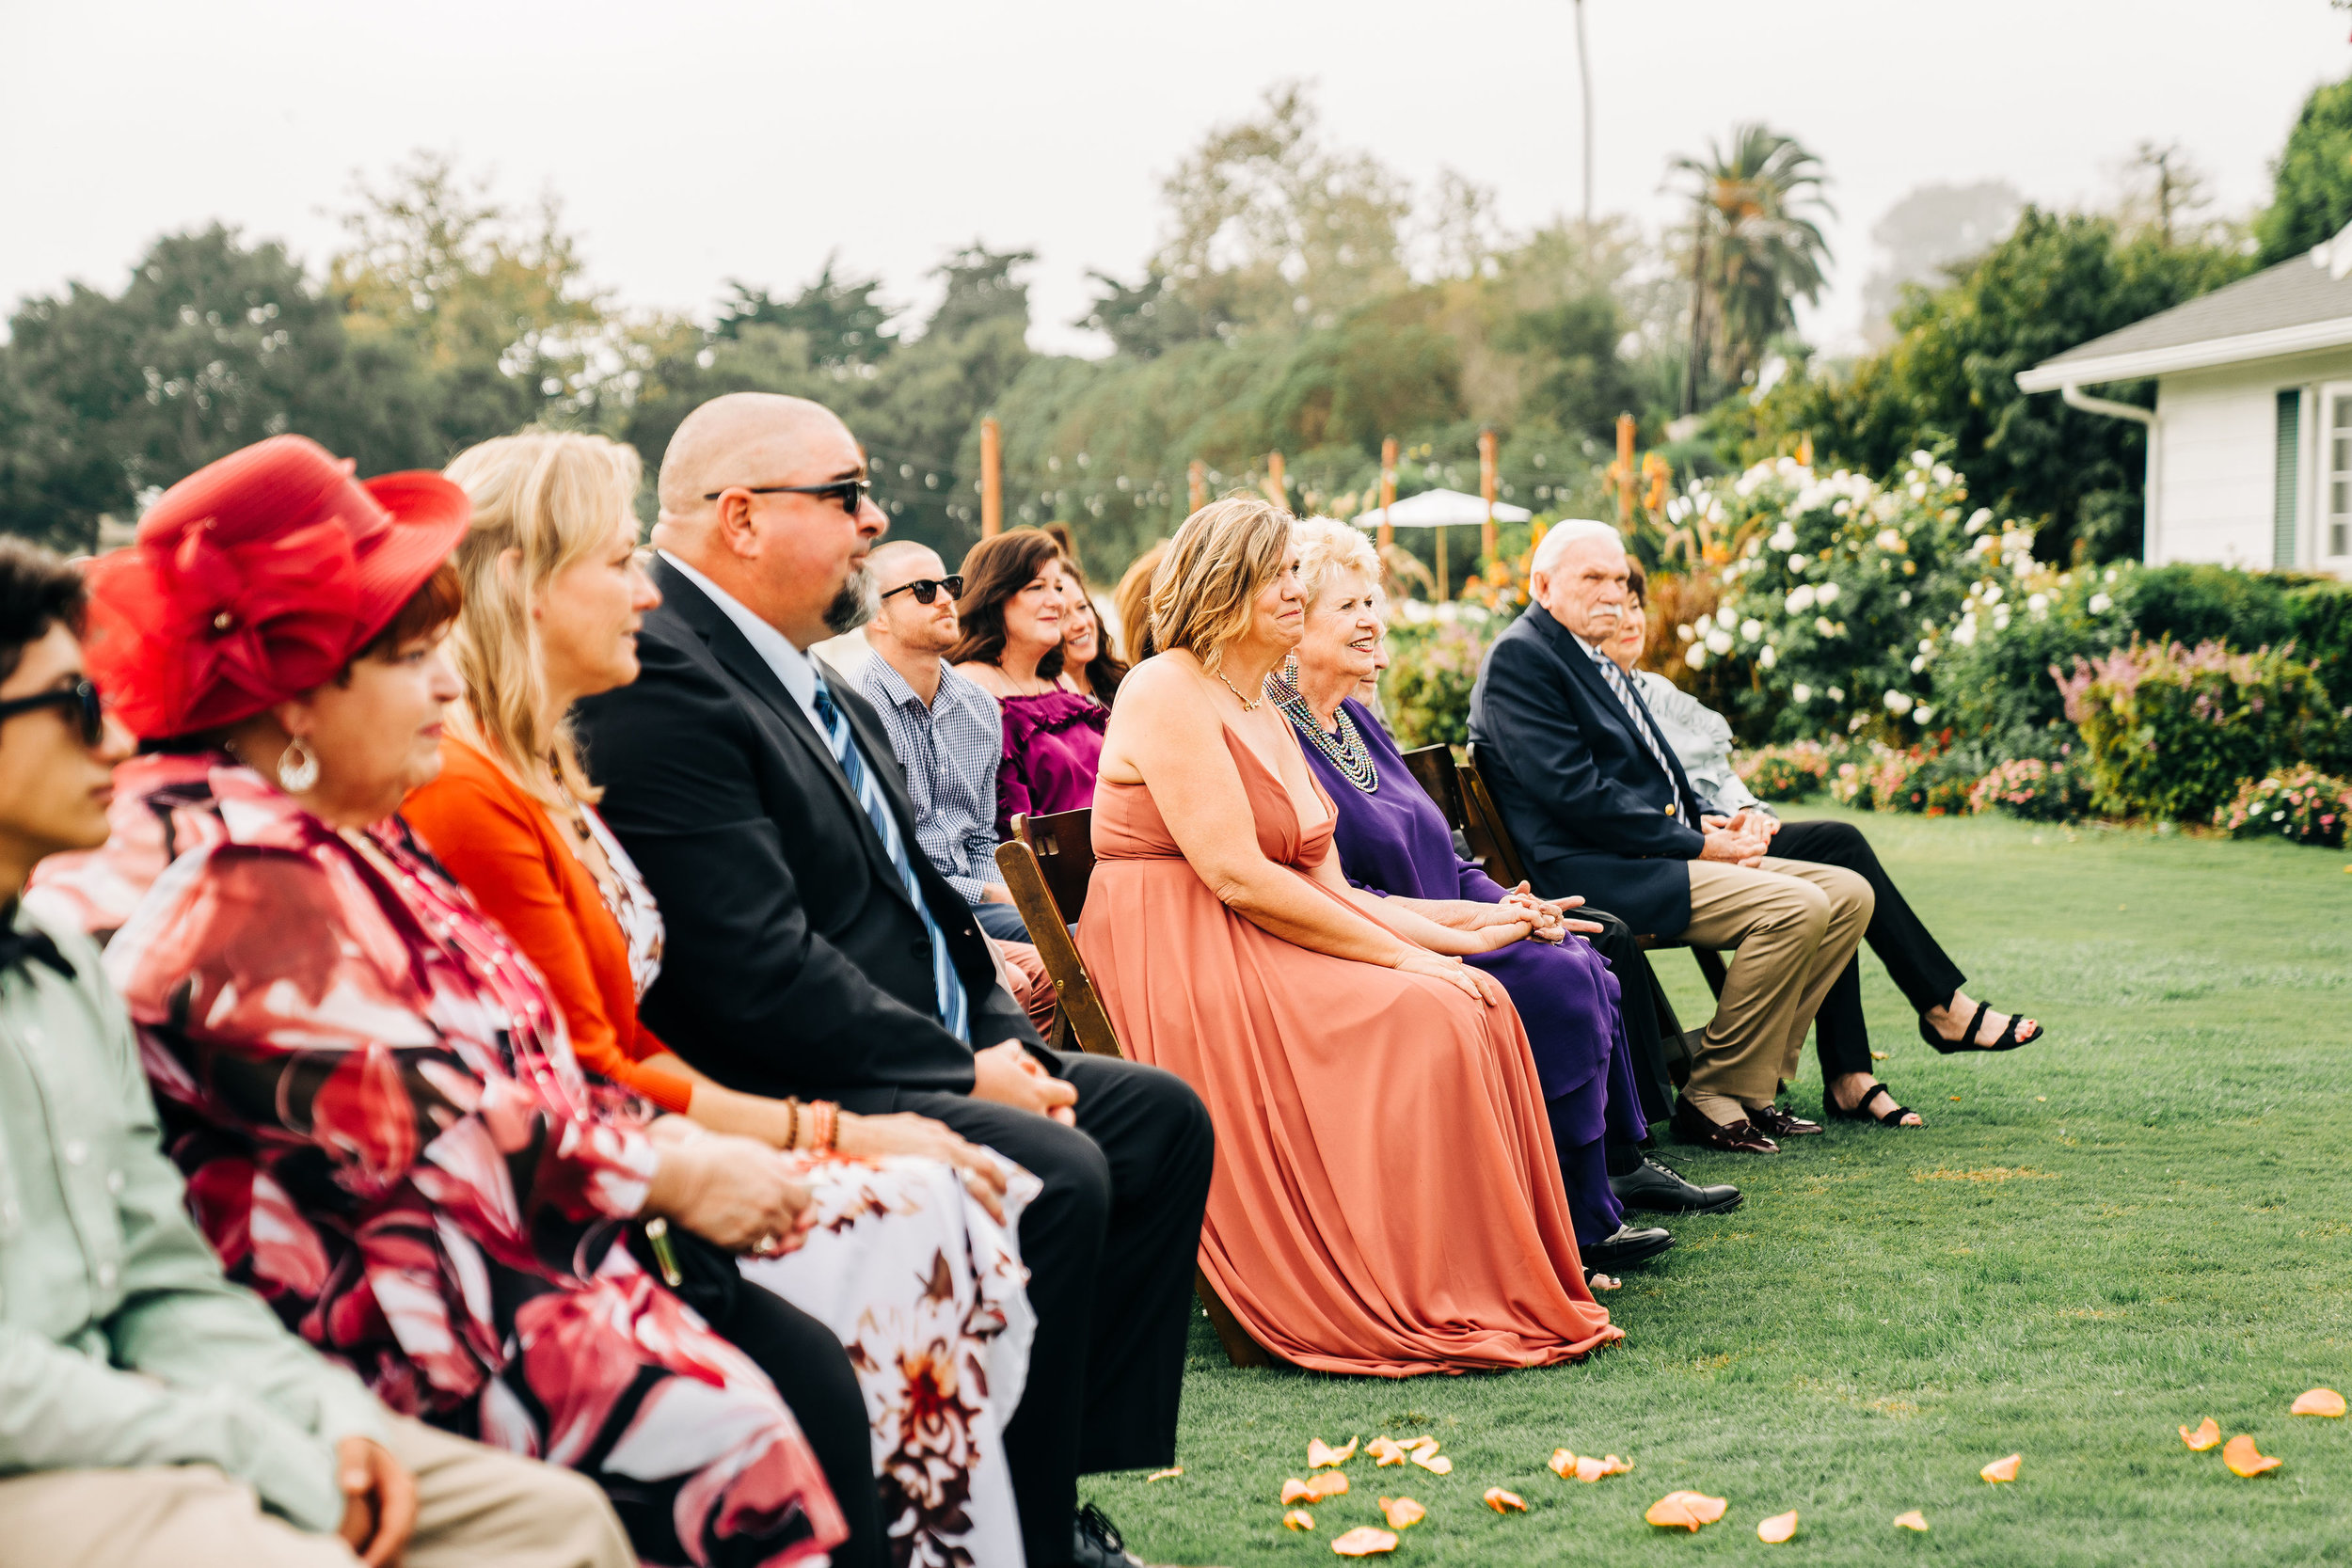 allie-shupe-tyler-wiggins-wedding-santa-barbara 091.jpg